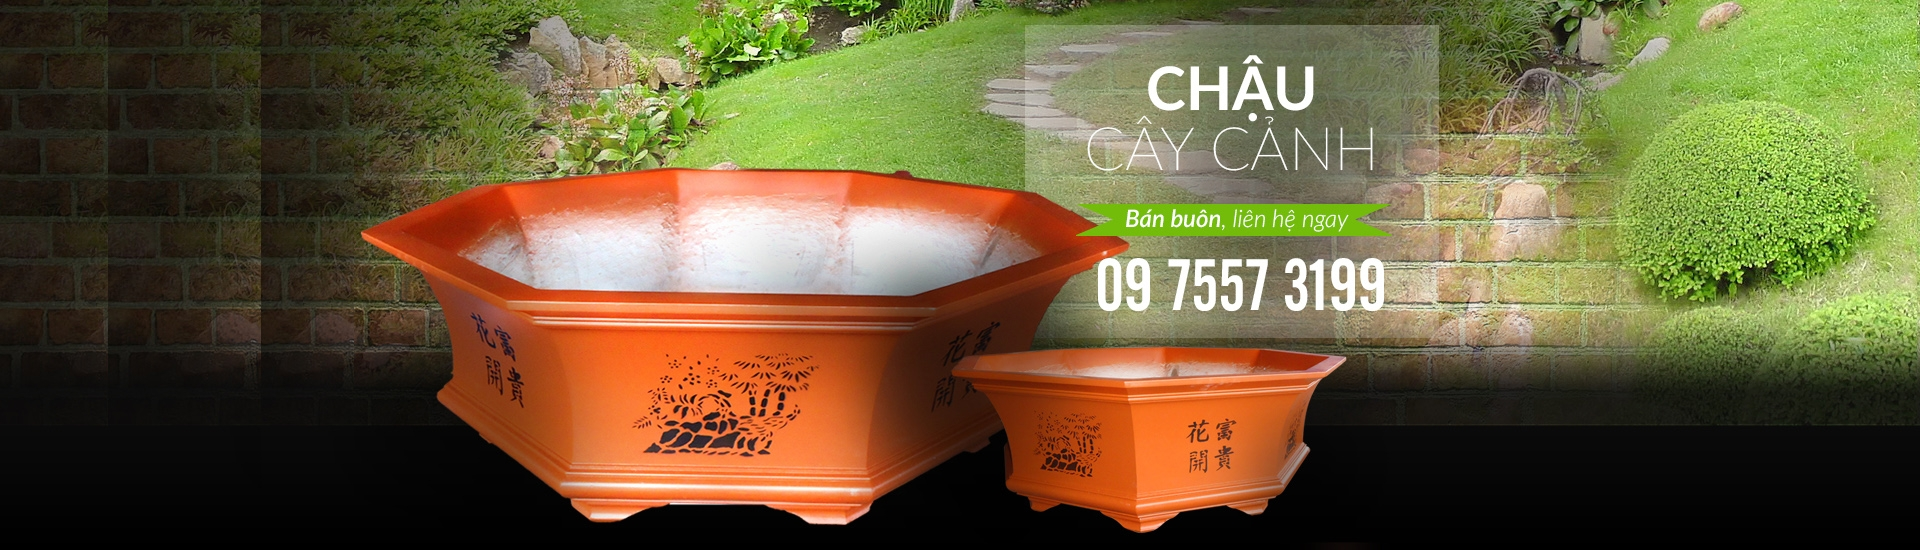 Chau Cay Canh (@chaucaycanhhcm) Cover Image